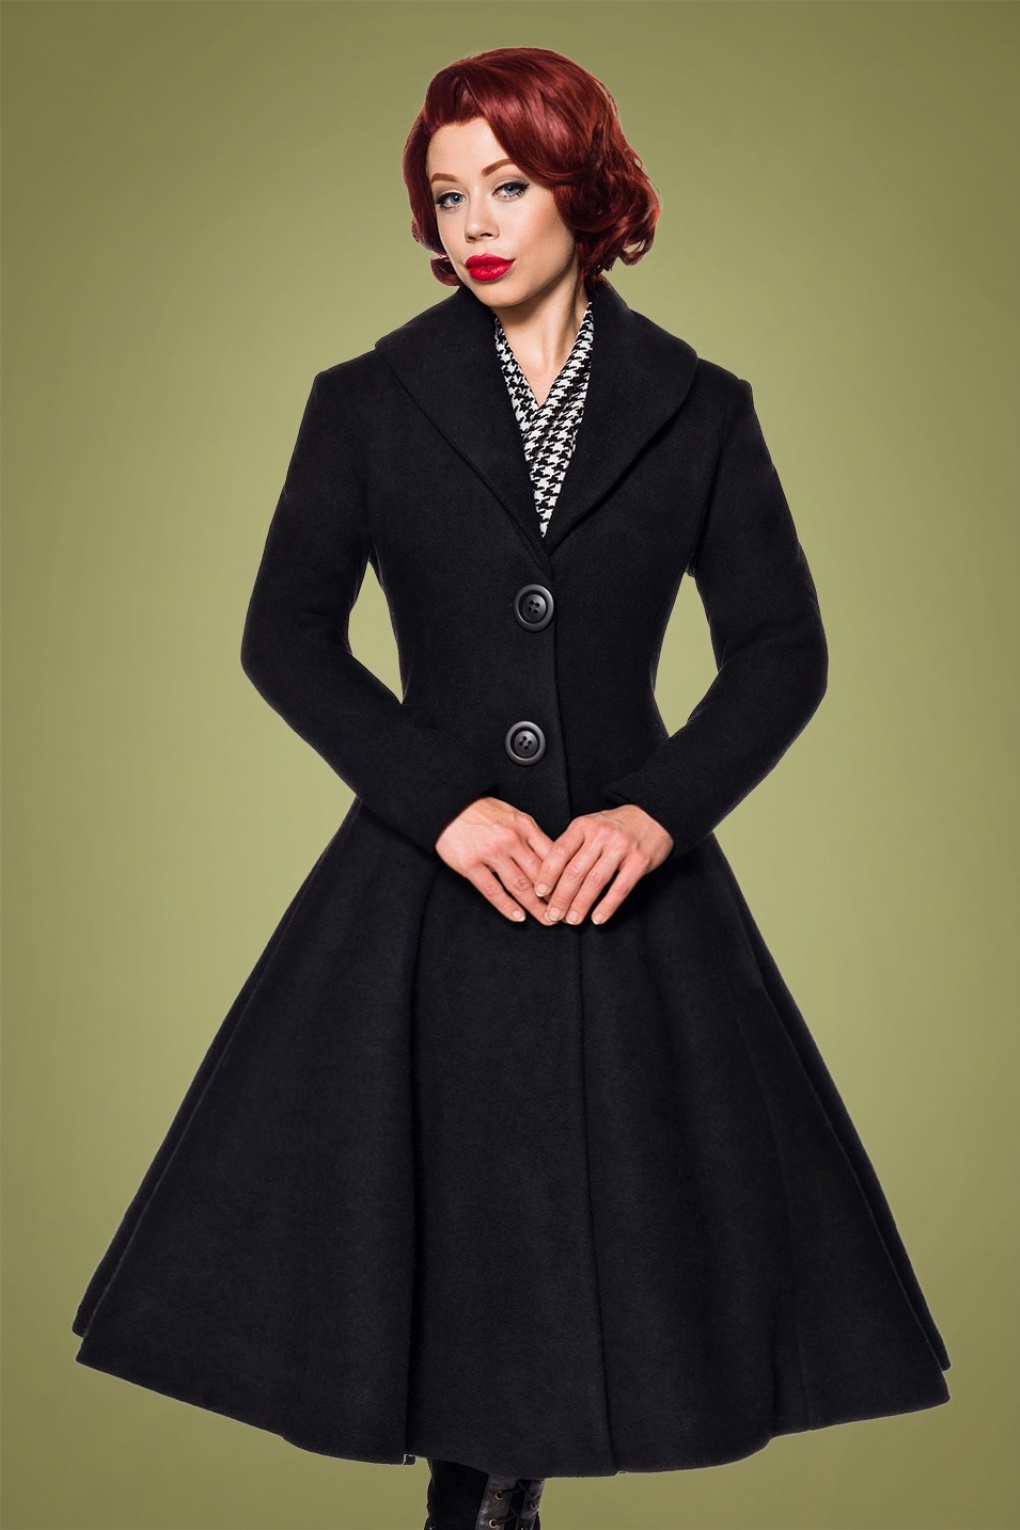 Vintage Coats & Jackets | Retro Coats and Jackets 50s Dorrie Wool Coat in Black £122.48 AT vintagedancer.com